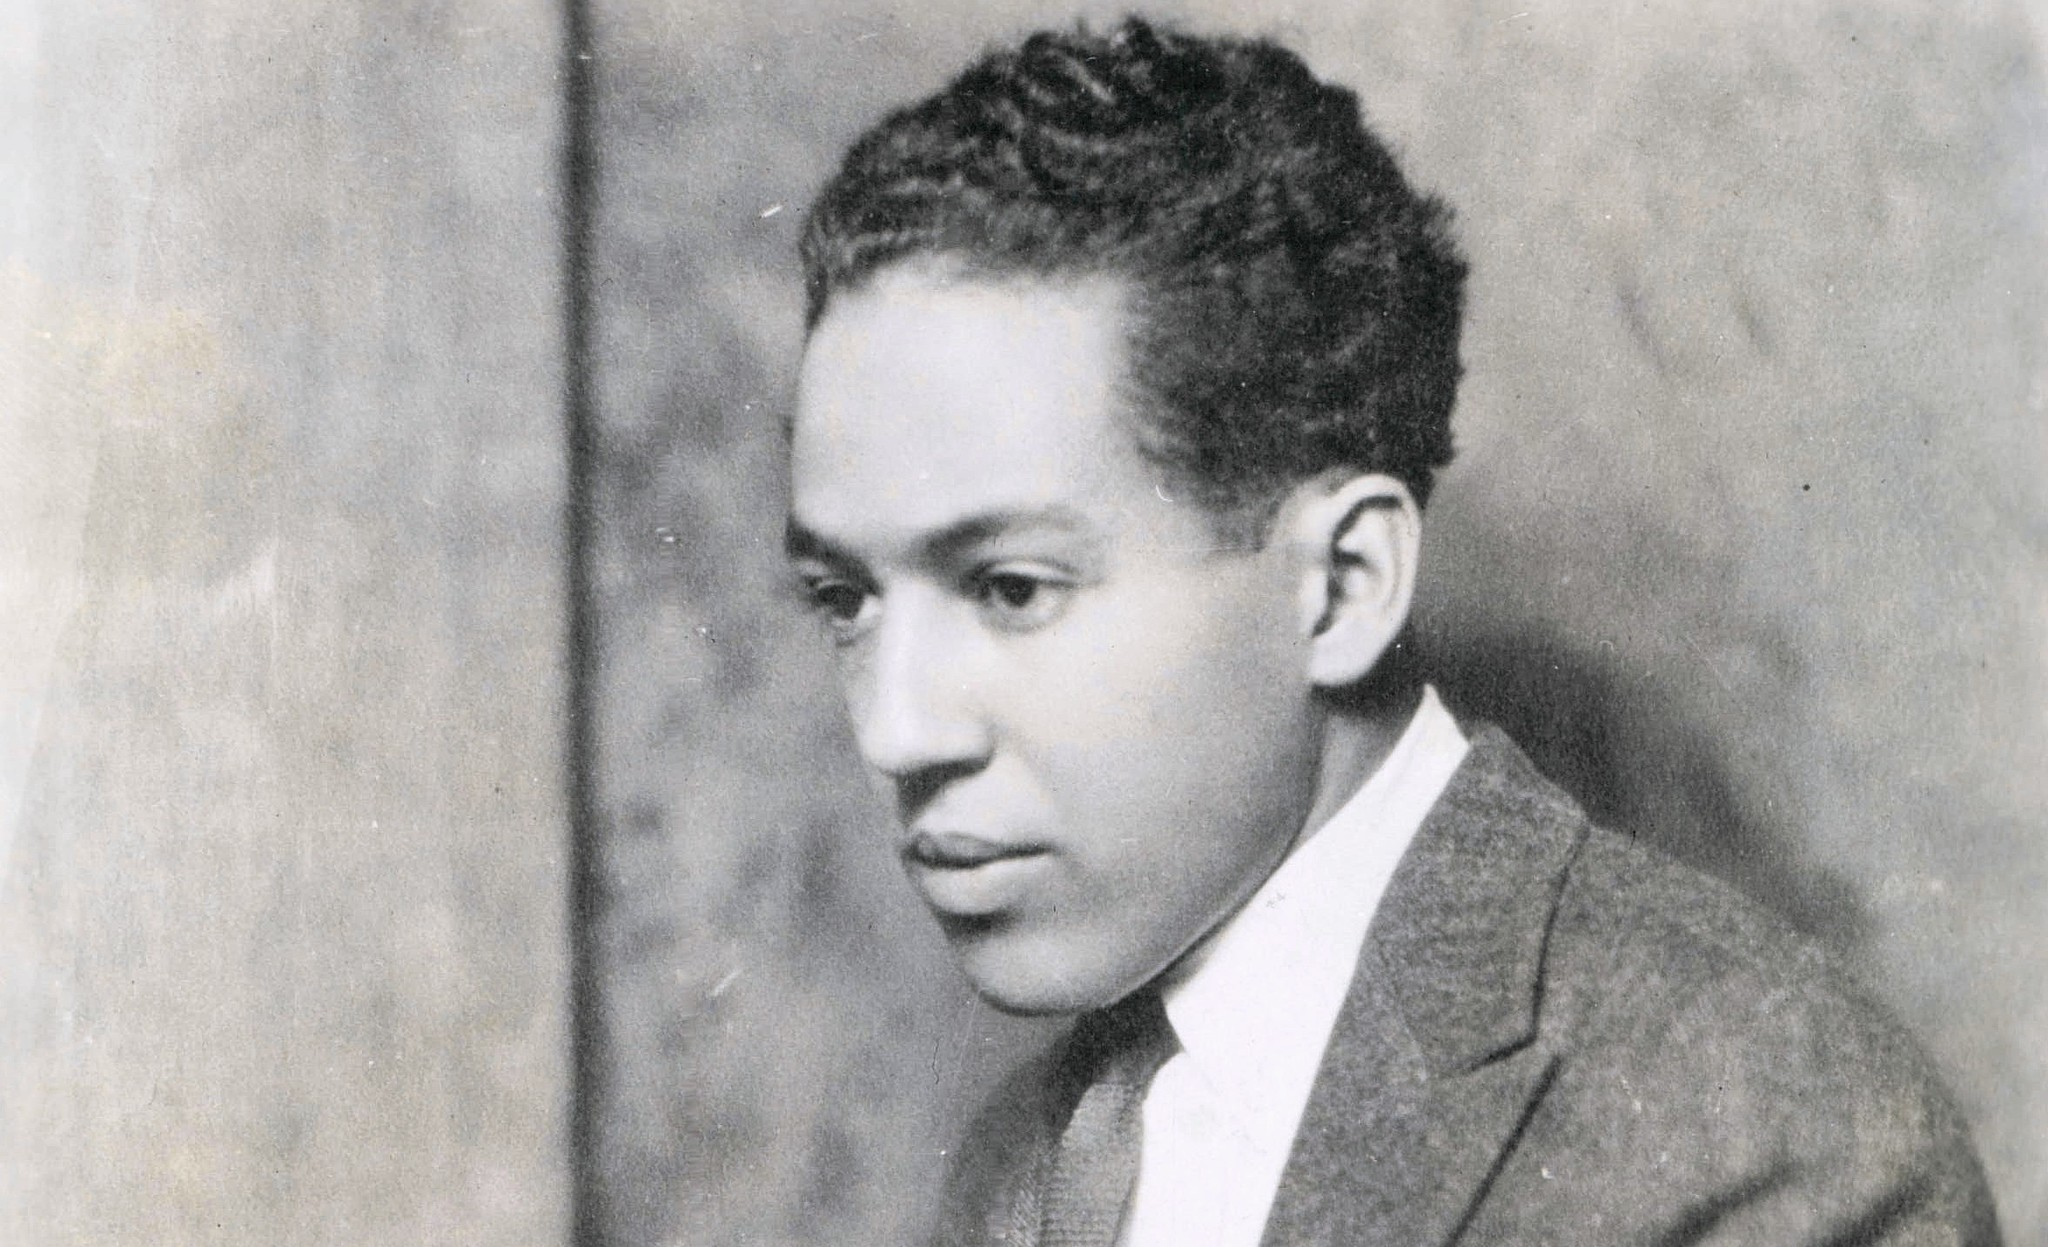 langston hughes  Can a poem change a mind, a vote, a nation? - Chicago Tribune